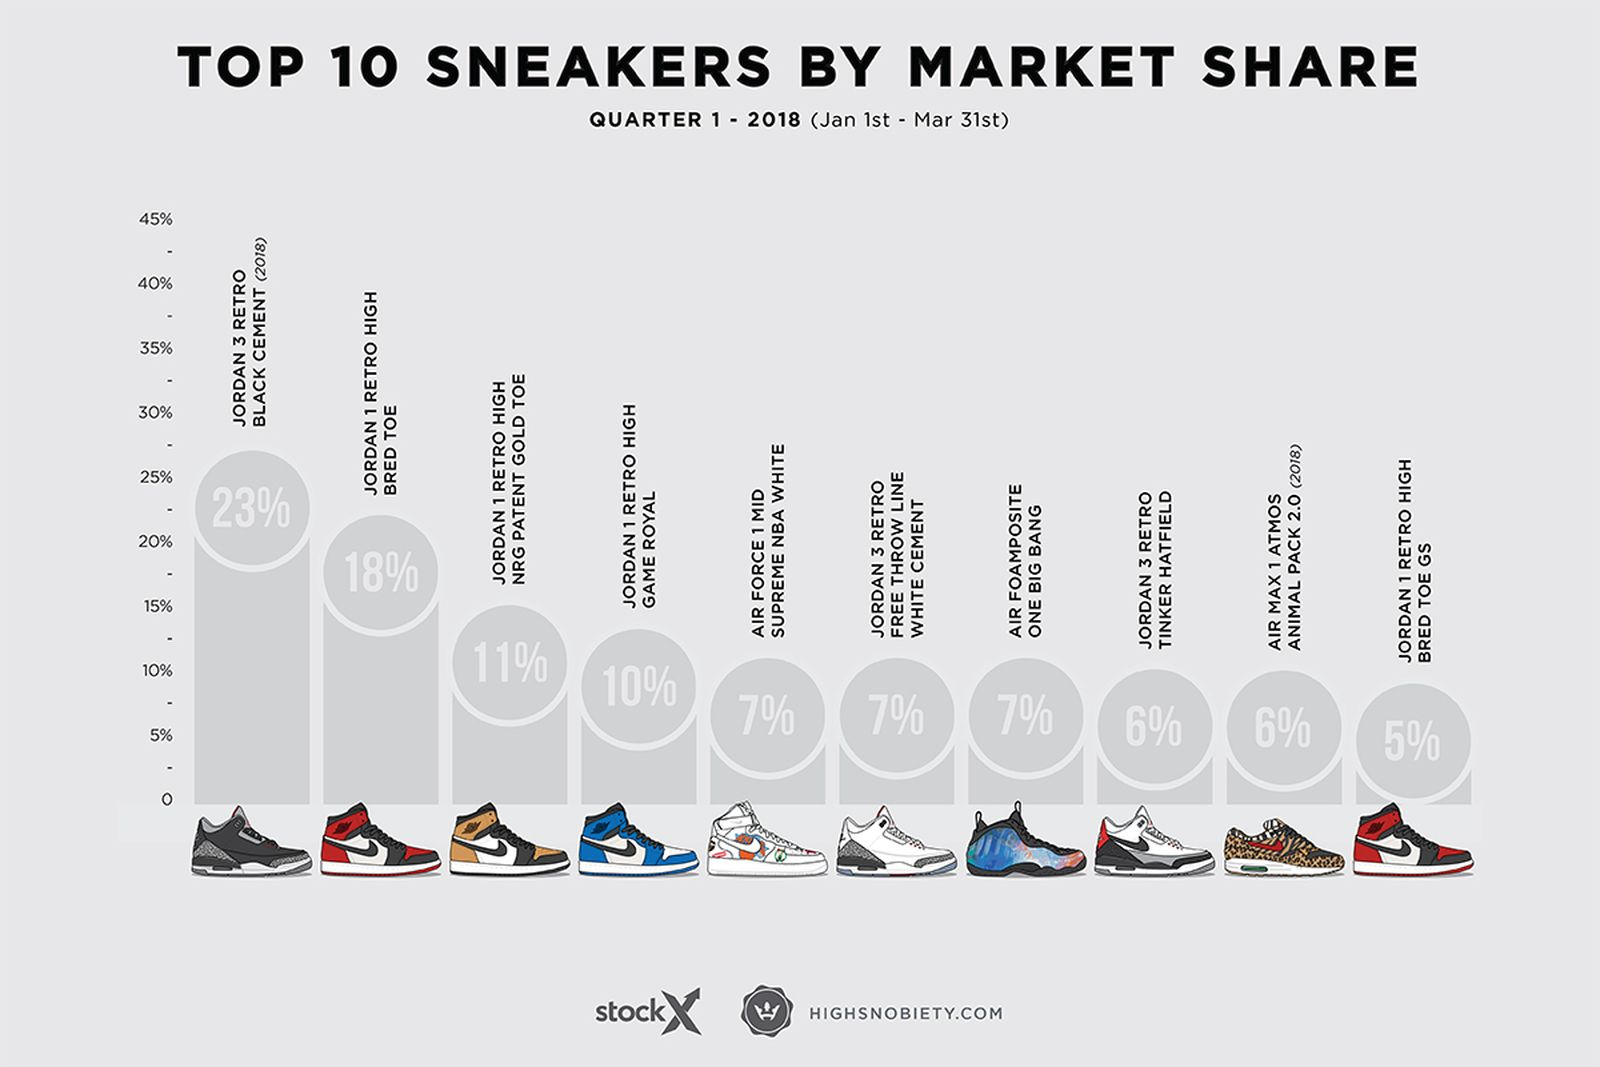 most-valuable-sneakers-2018-q1-3